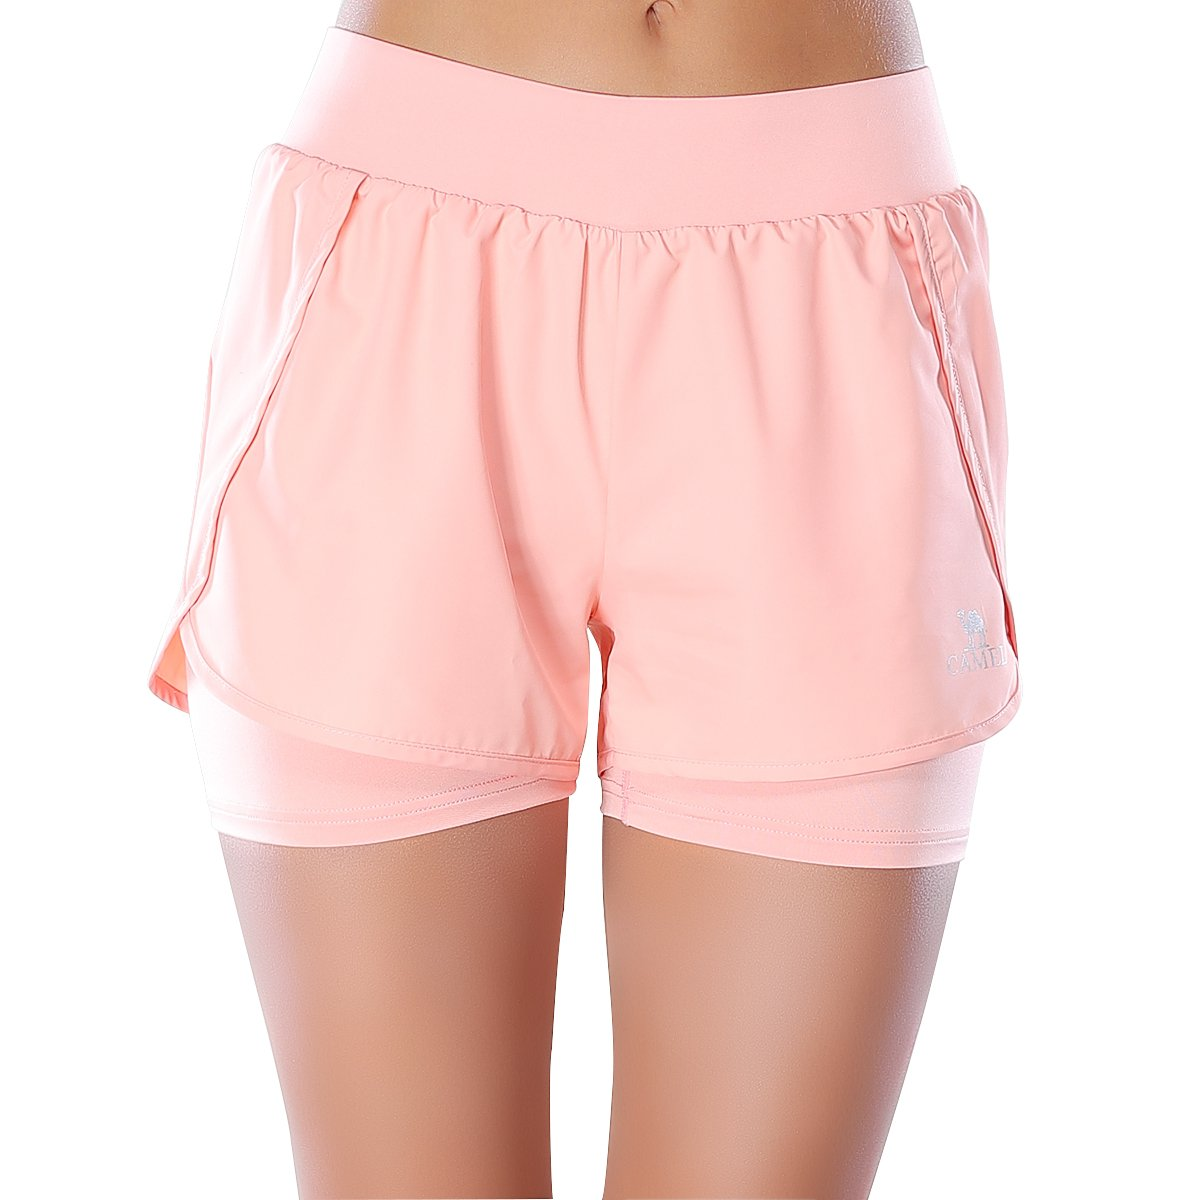 Camel Running Shorts for Women Athletic Sports Fitness Double Layer Yoga Shorts With Compression Lining Tights